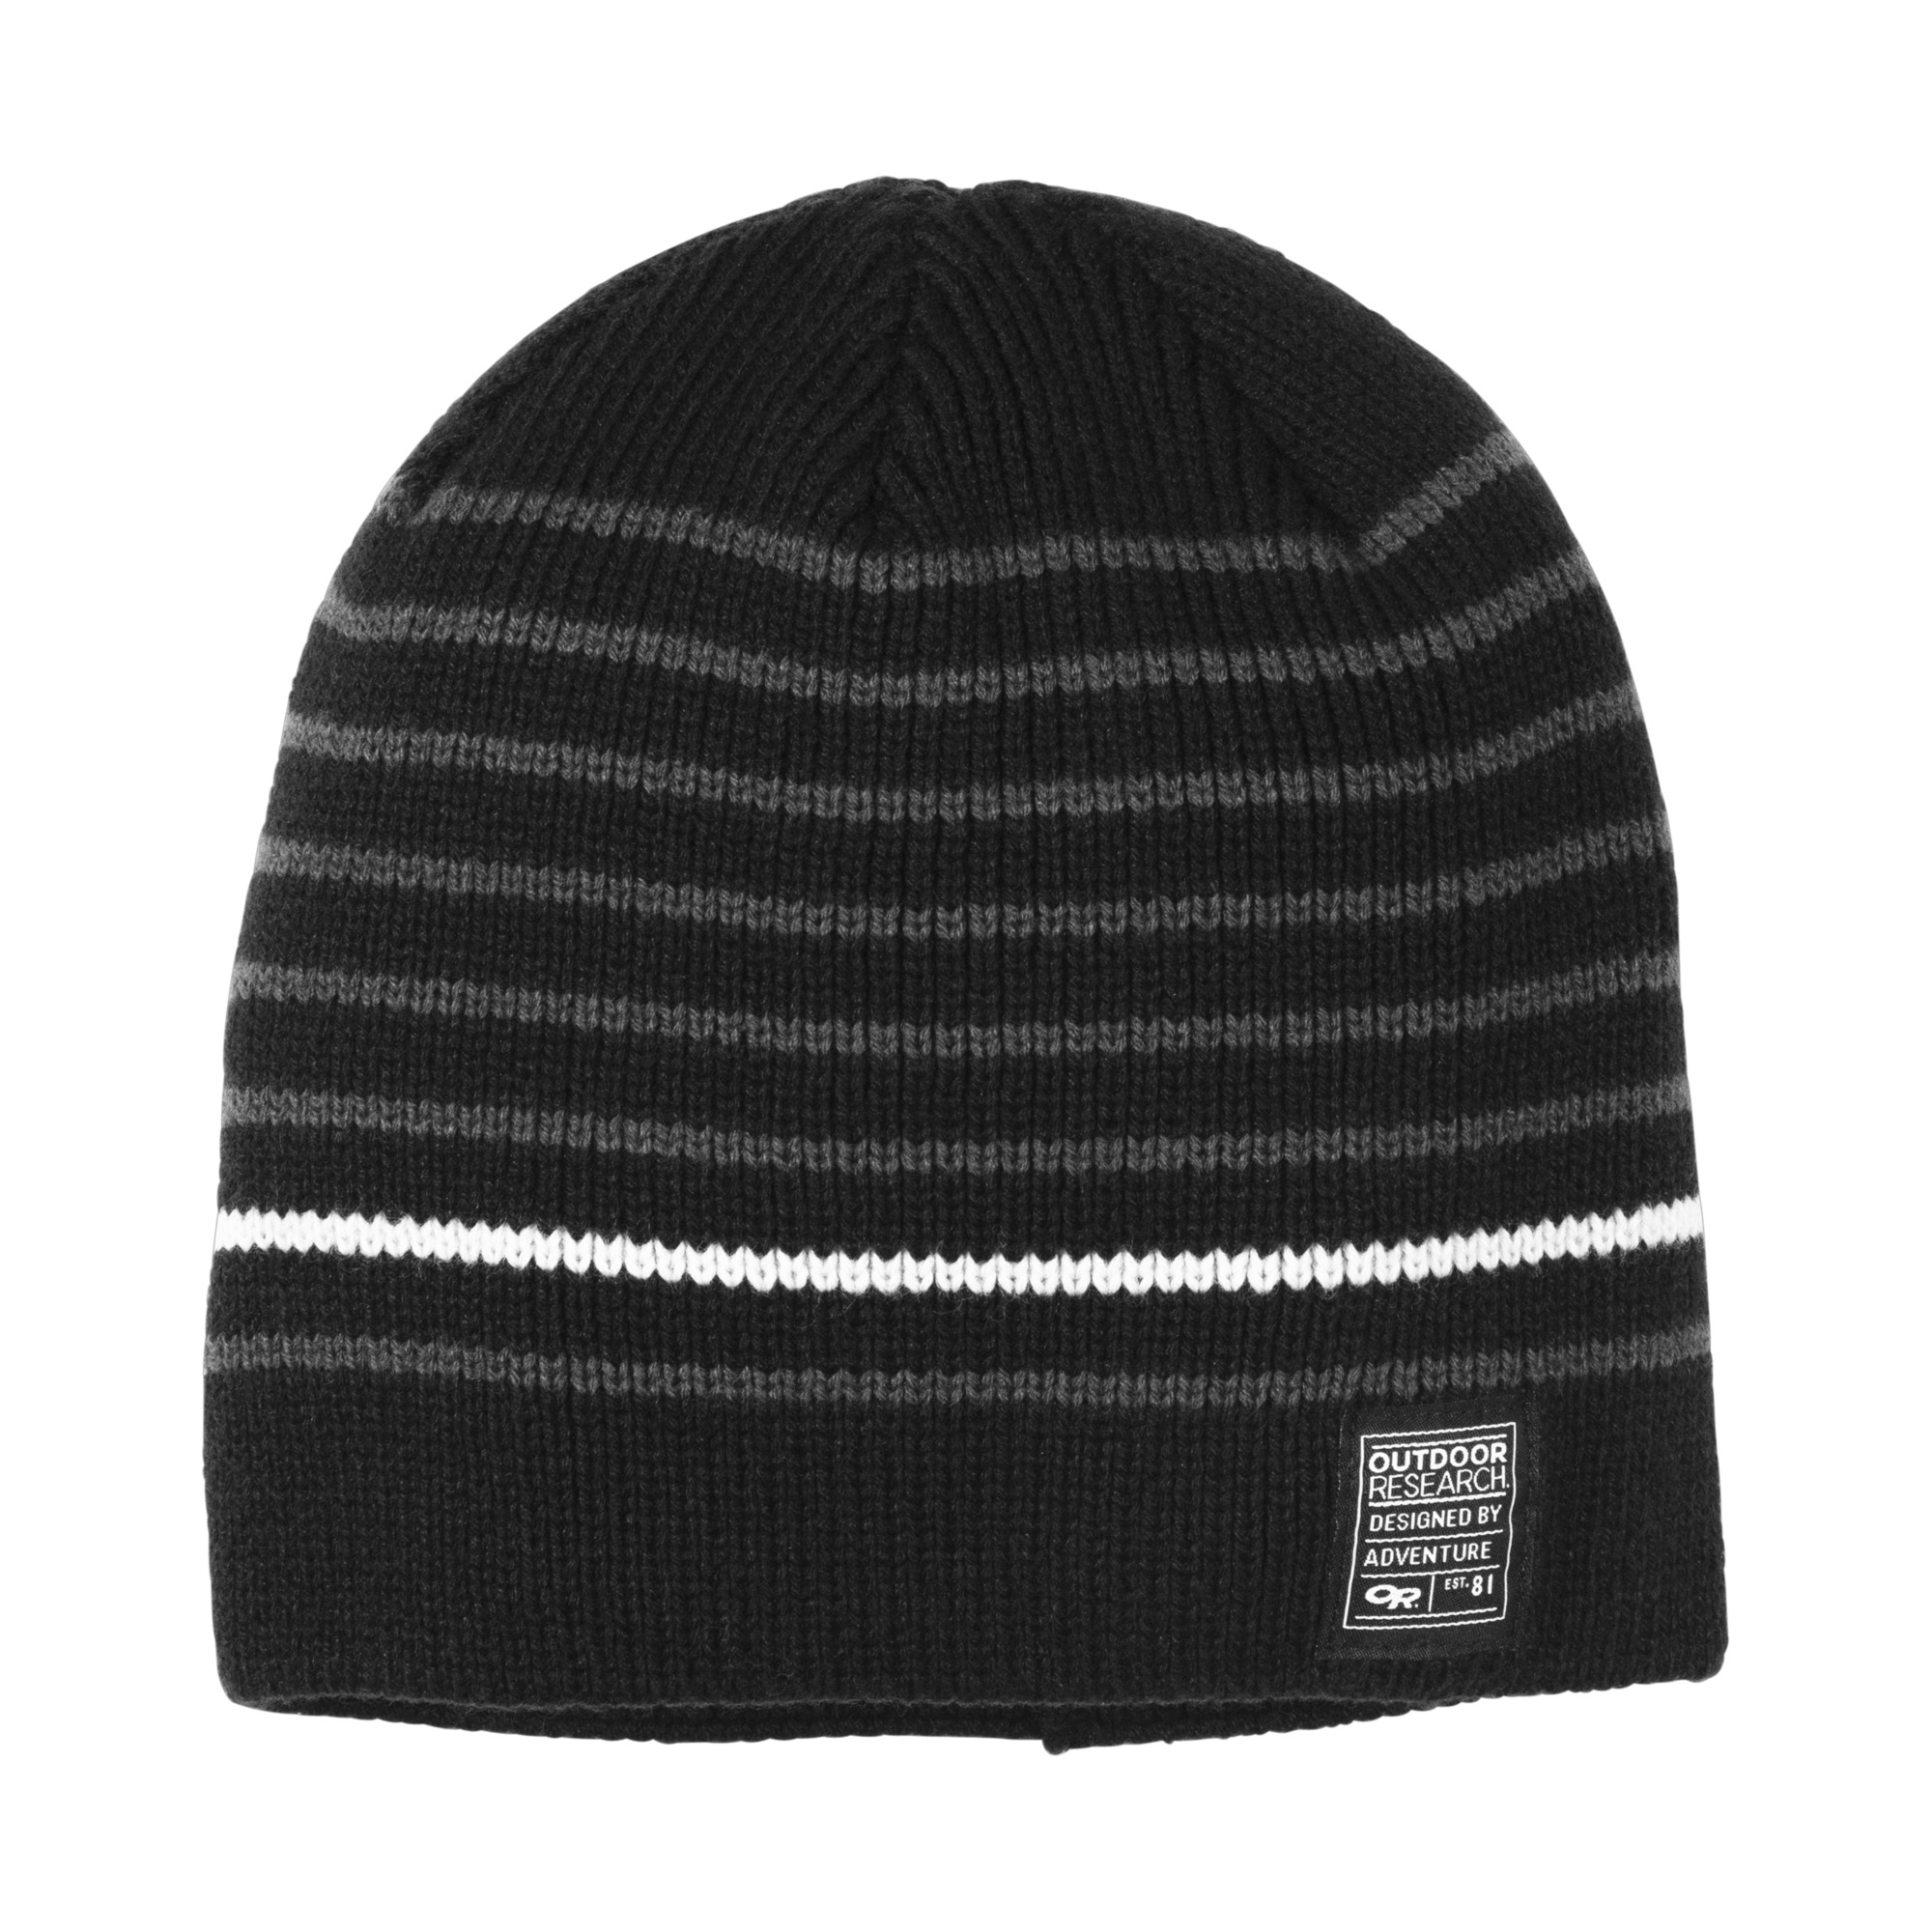 Credence Vintage Credence Beanie Black Outdoor Research